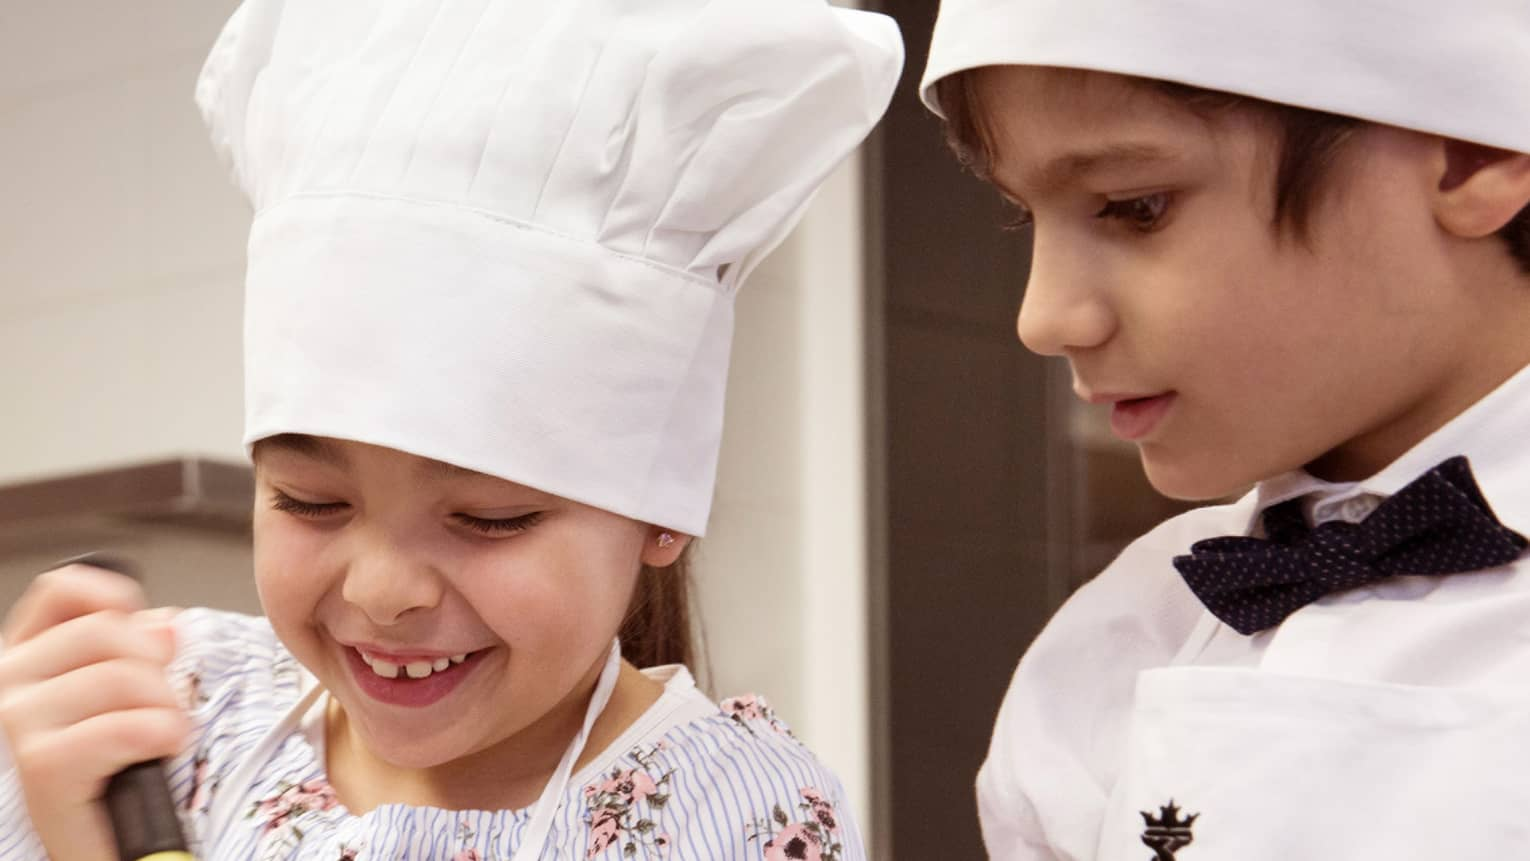 Girl and boy in chef hats; girl stirring with whisk, boy watching